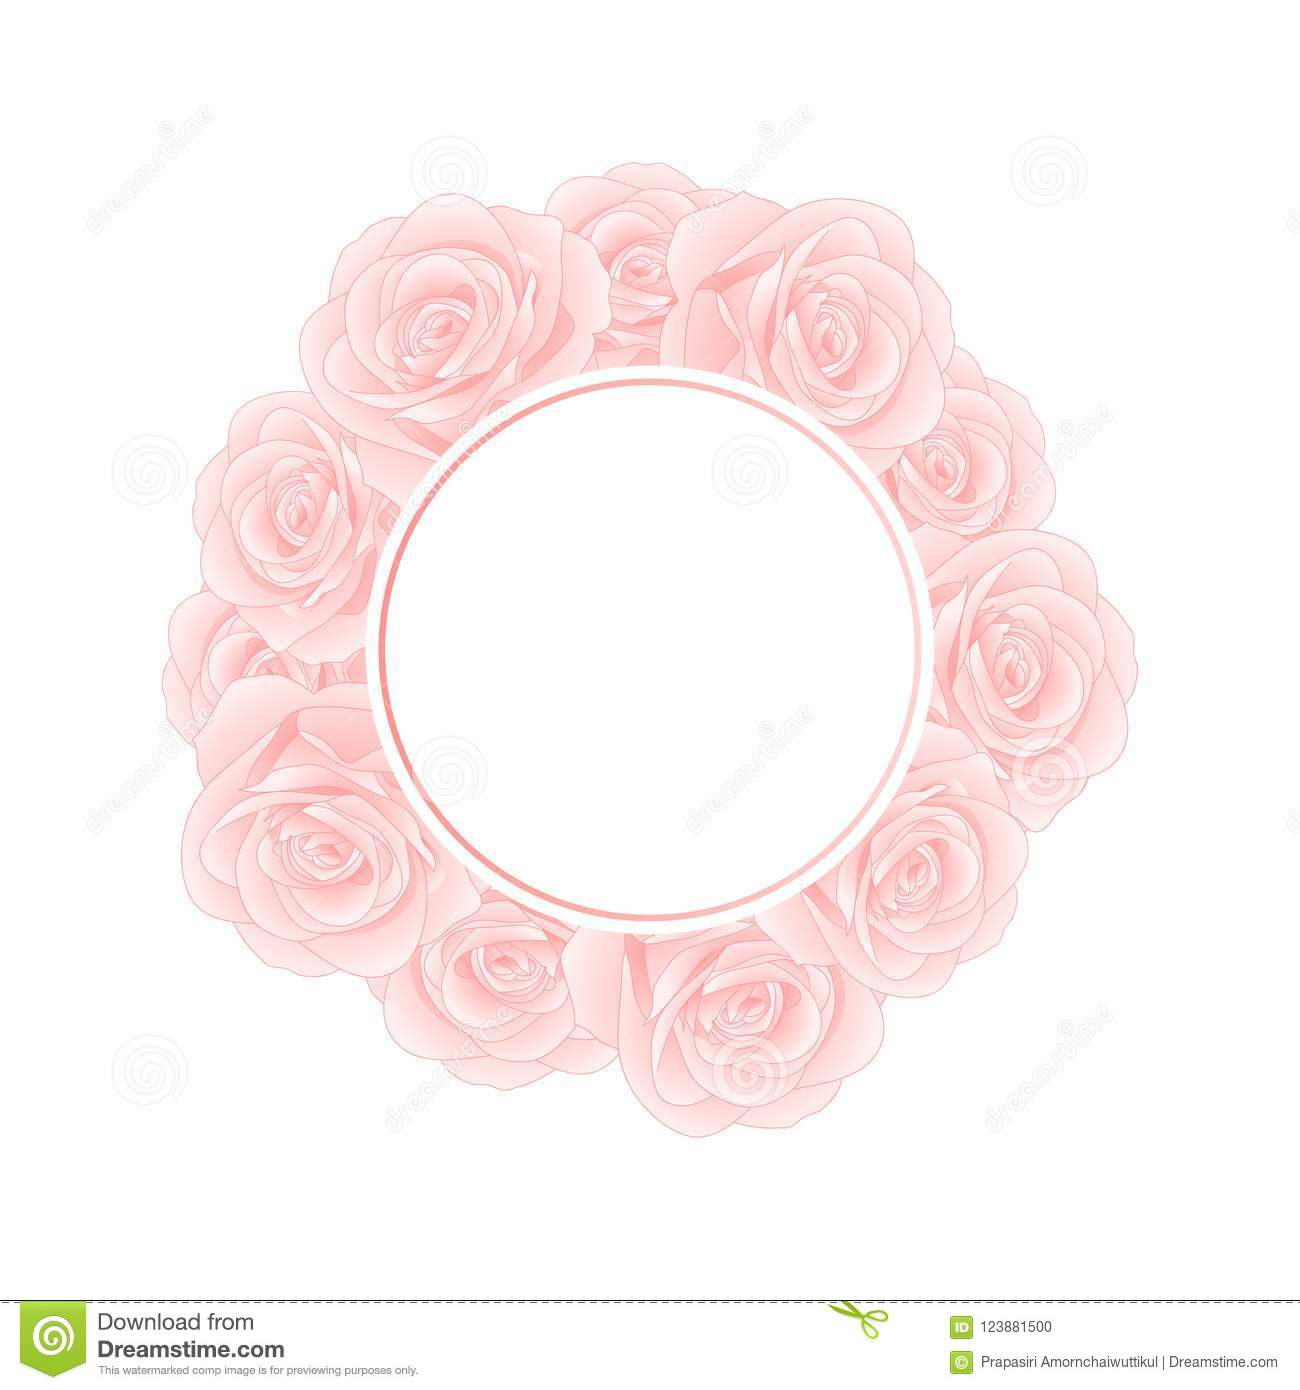 Beautiful Pink Rose Banner Wreath - Rosa isolated on White Background. Valentine Day. Vector Illustration